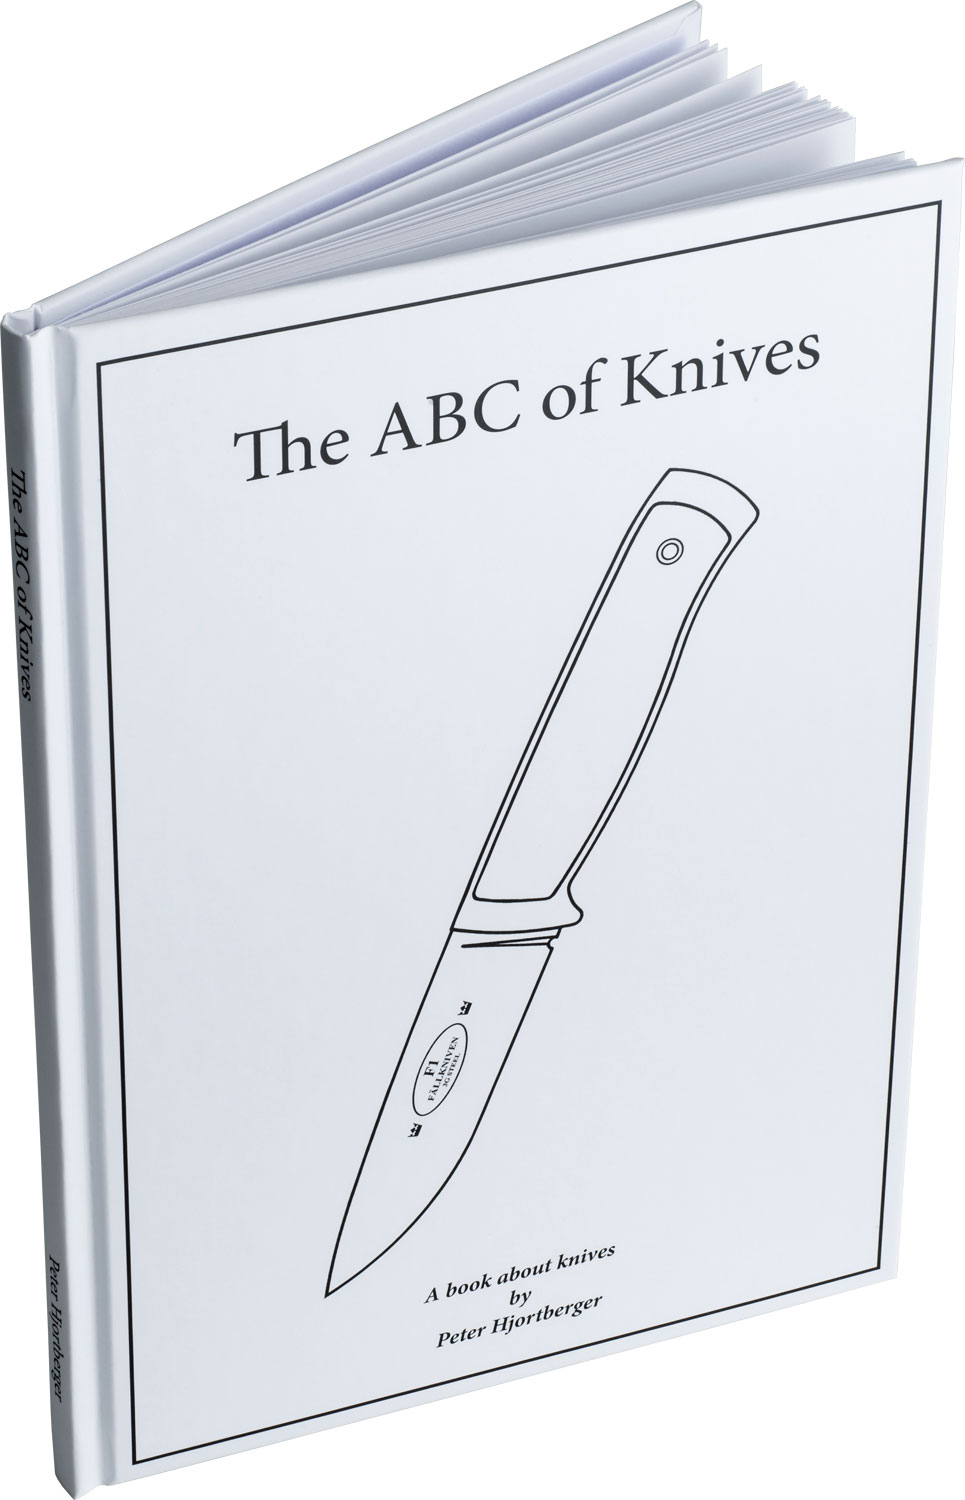 Fallkniven, The ABC of Knives by Peter Hjortberger, Hardcover